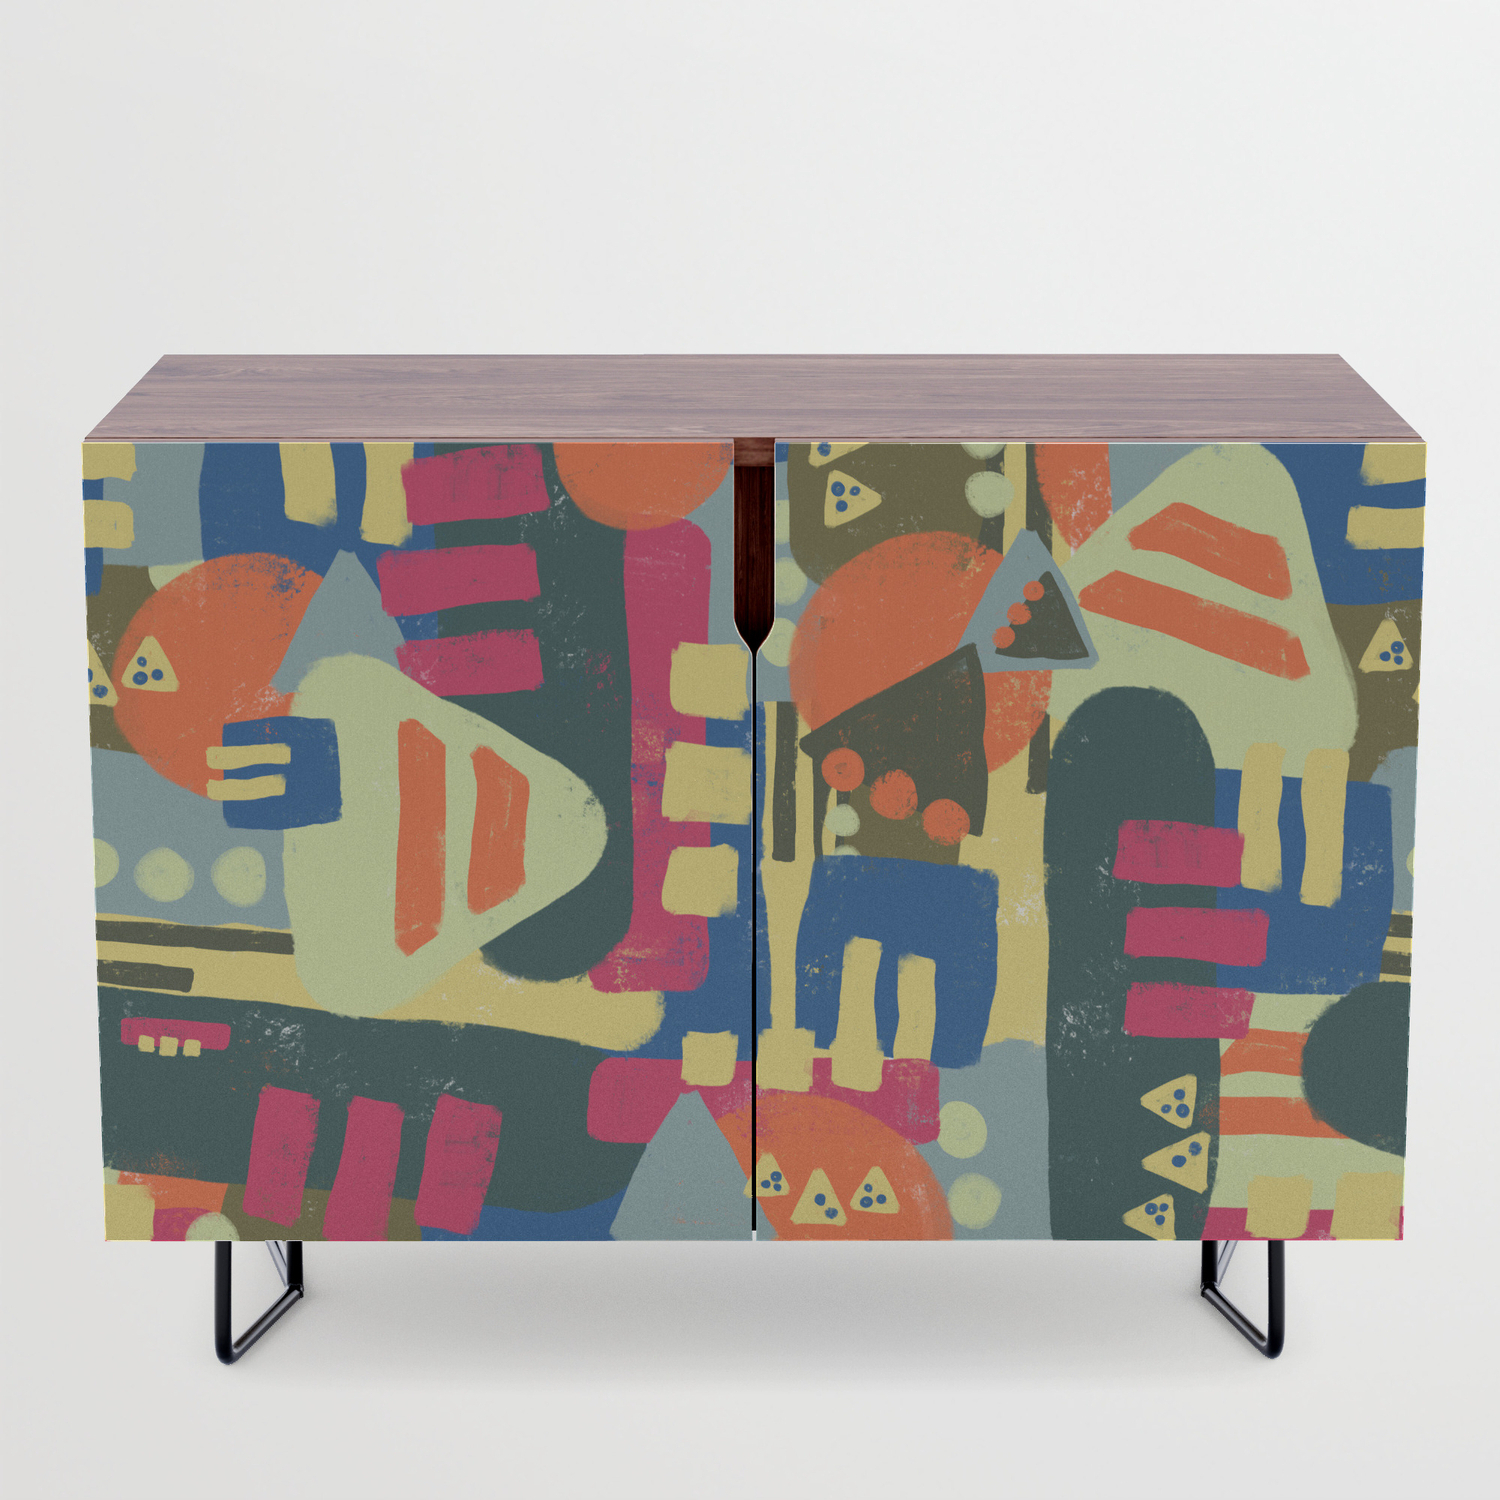 Abstract Geometric Shapes Pattern Credenza With Geometric Shapes Credenzas (View 4 of 20)